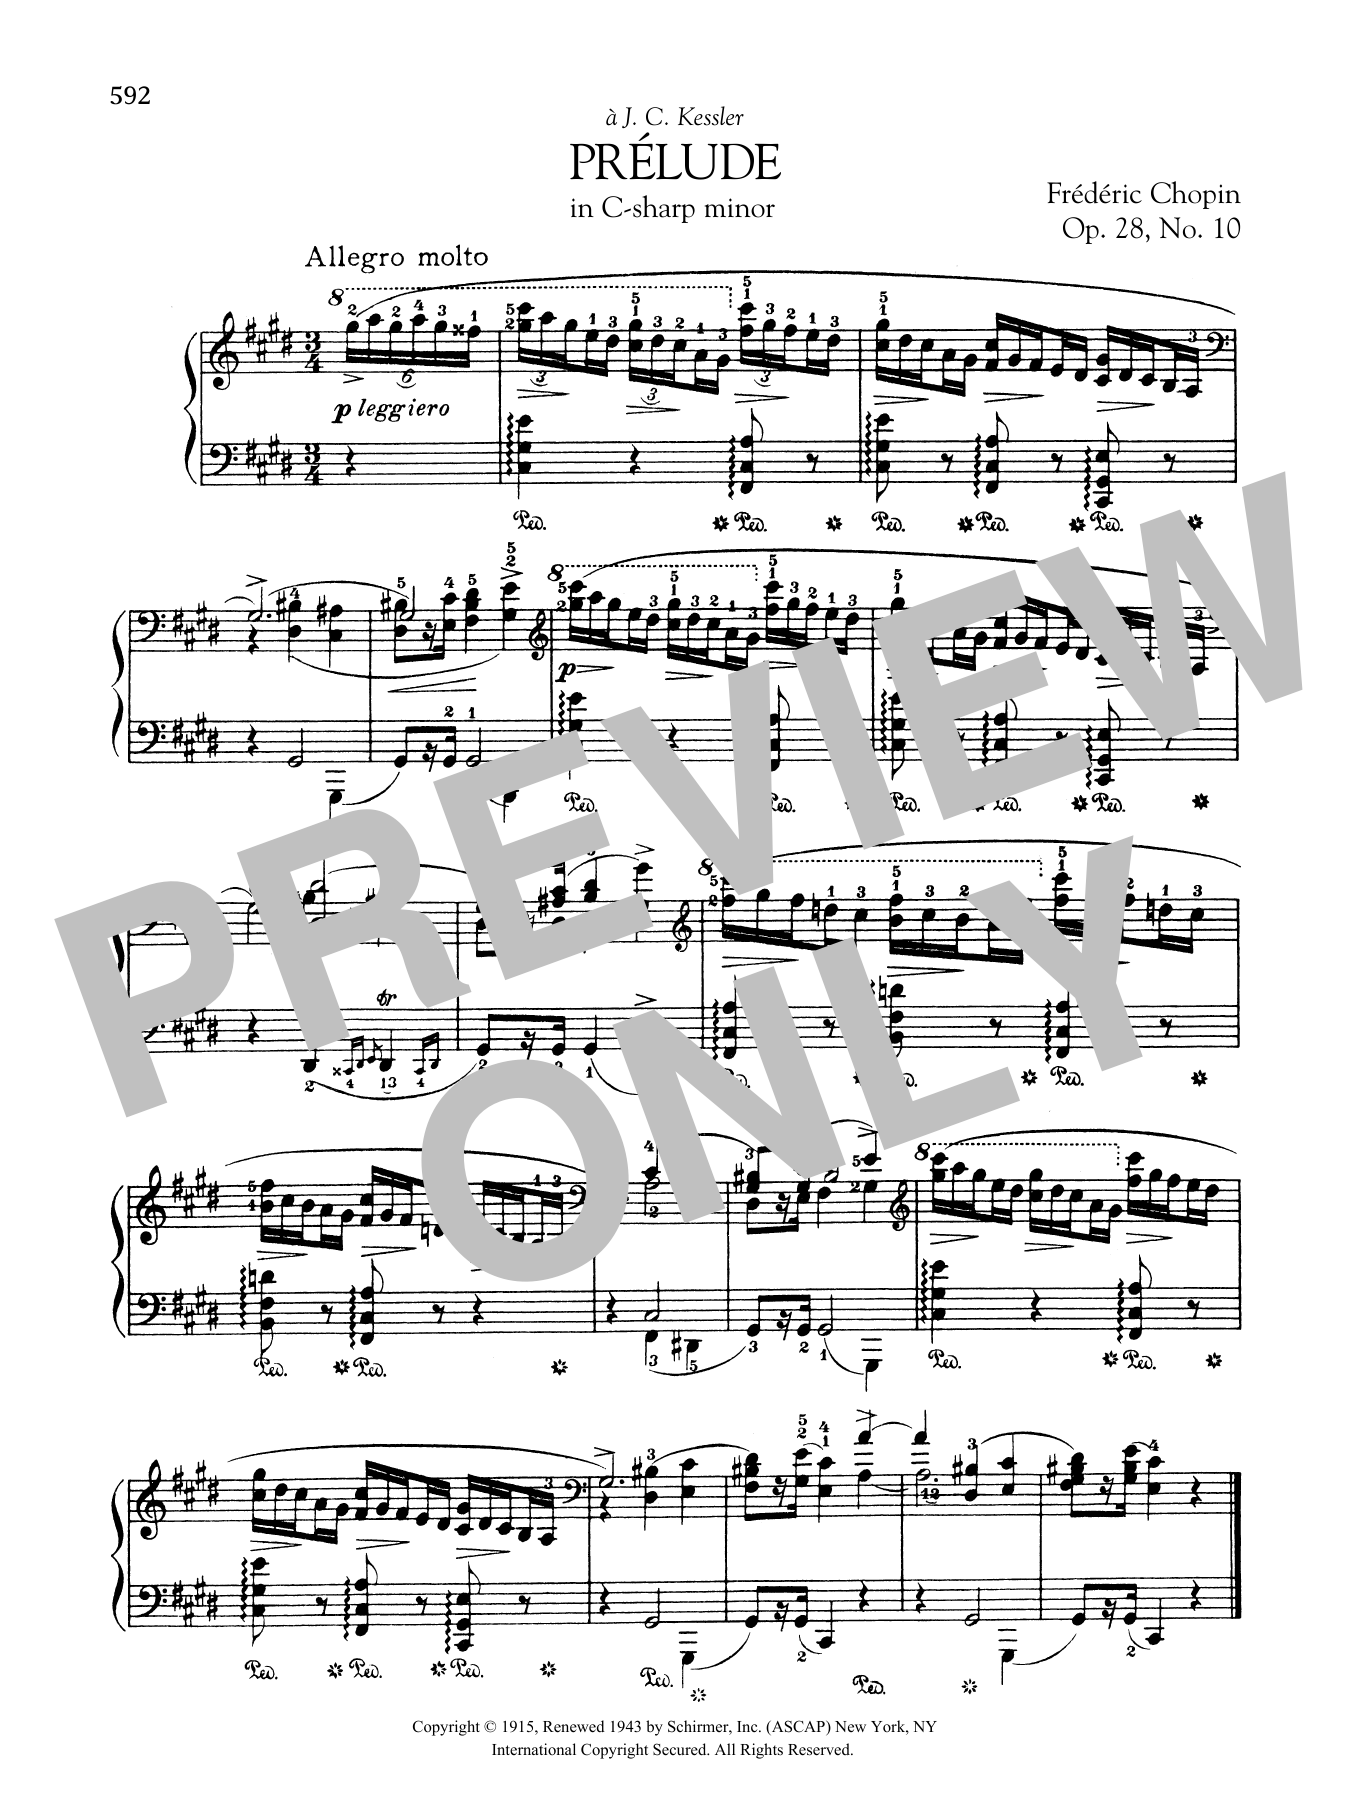 Prélude in C-sharp minor, Op. 28, No. 10 Sheet Music